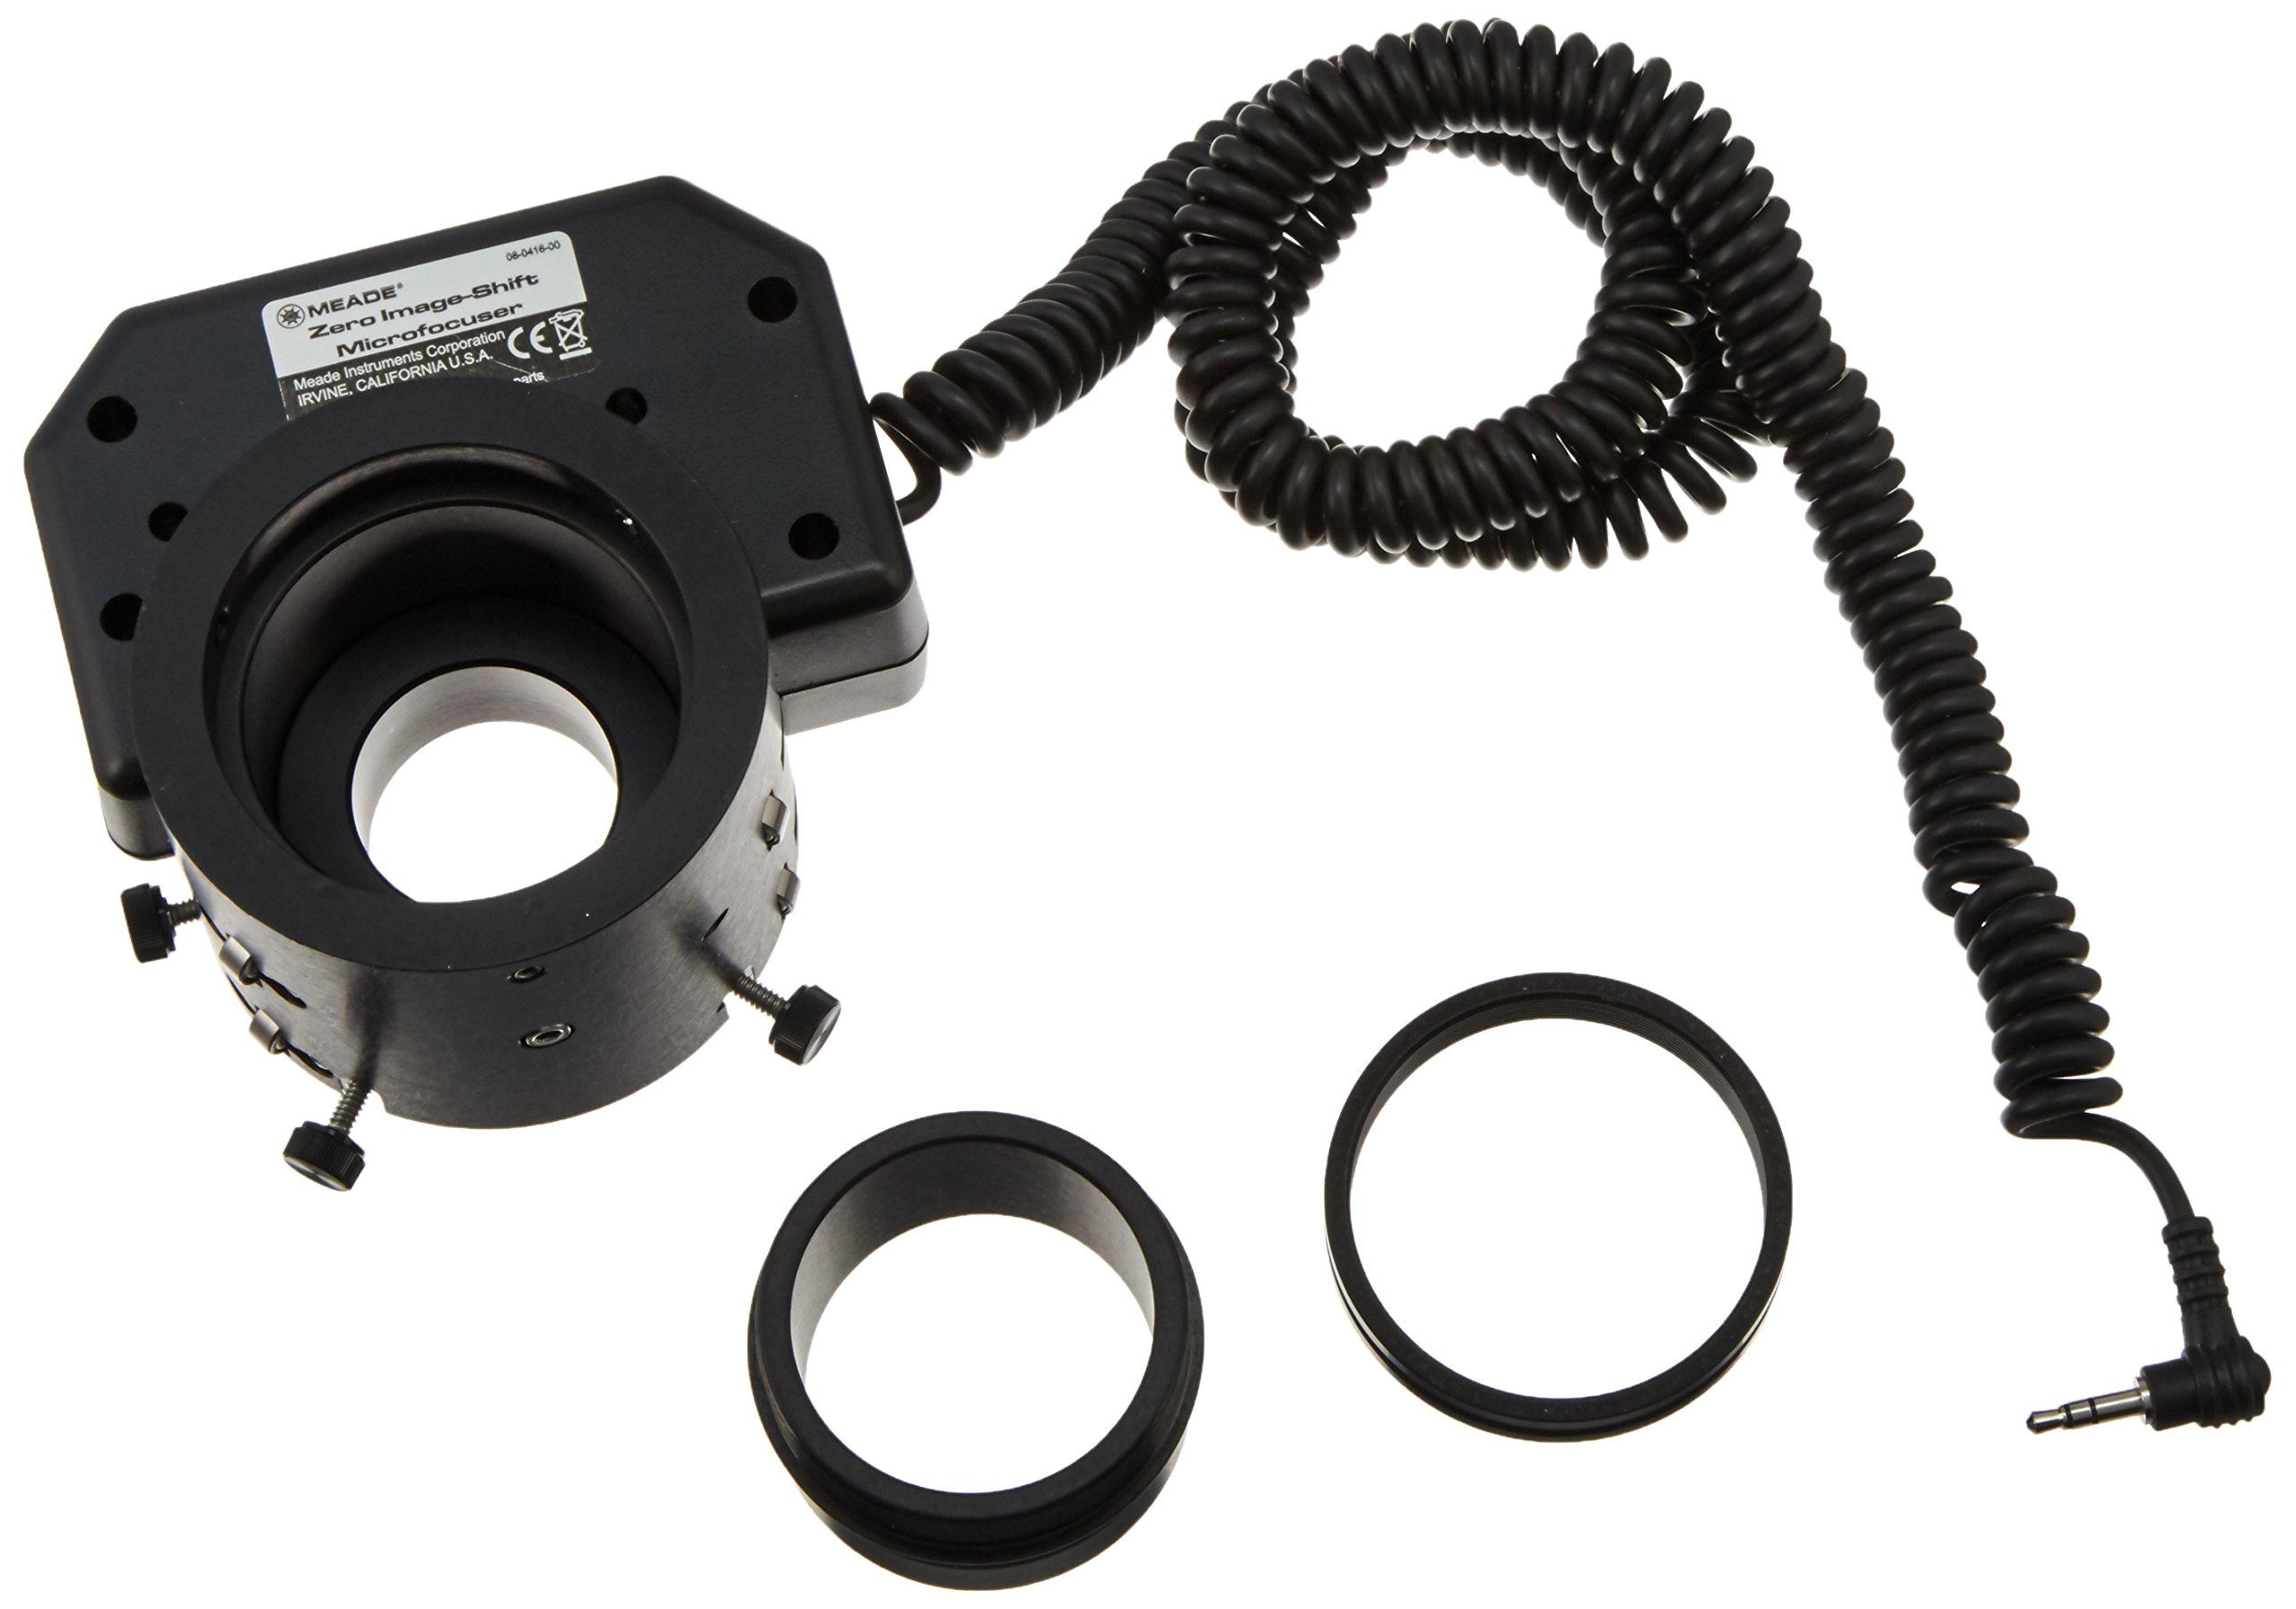 Meade 07080 Zero Image Shift-Electronic Micro-Focuser by Meade